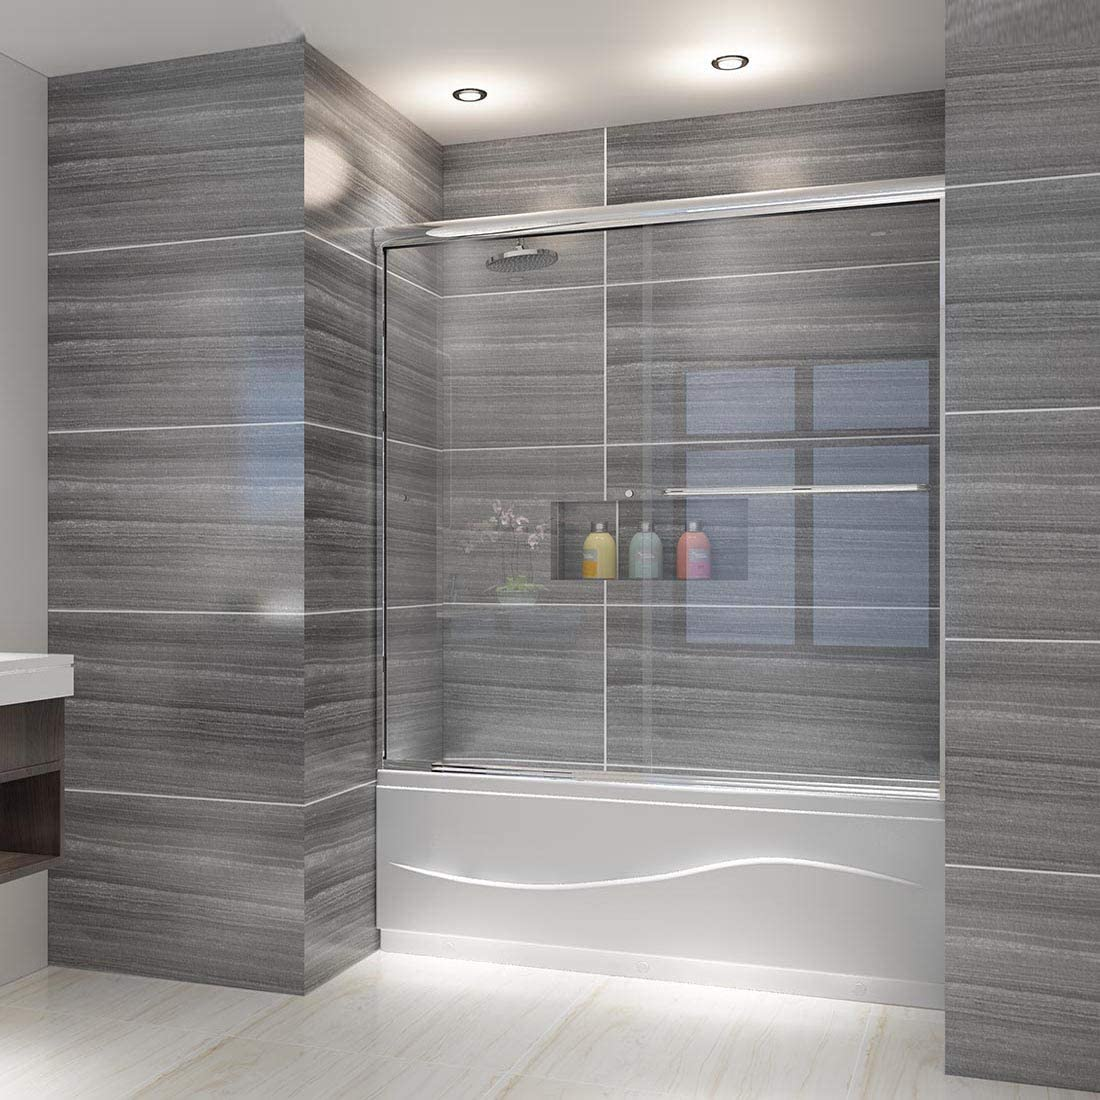 Elegant 58 5 60 In W X 57 3 8 In H Bypass Sliding Bathtub Glass Doors Semi Frameless Shower Door With 1 4 In Clear Tempered Glass Chrome Finish